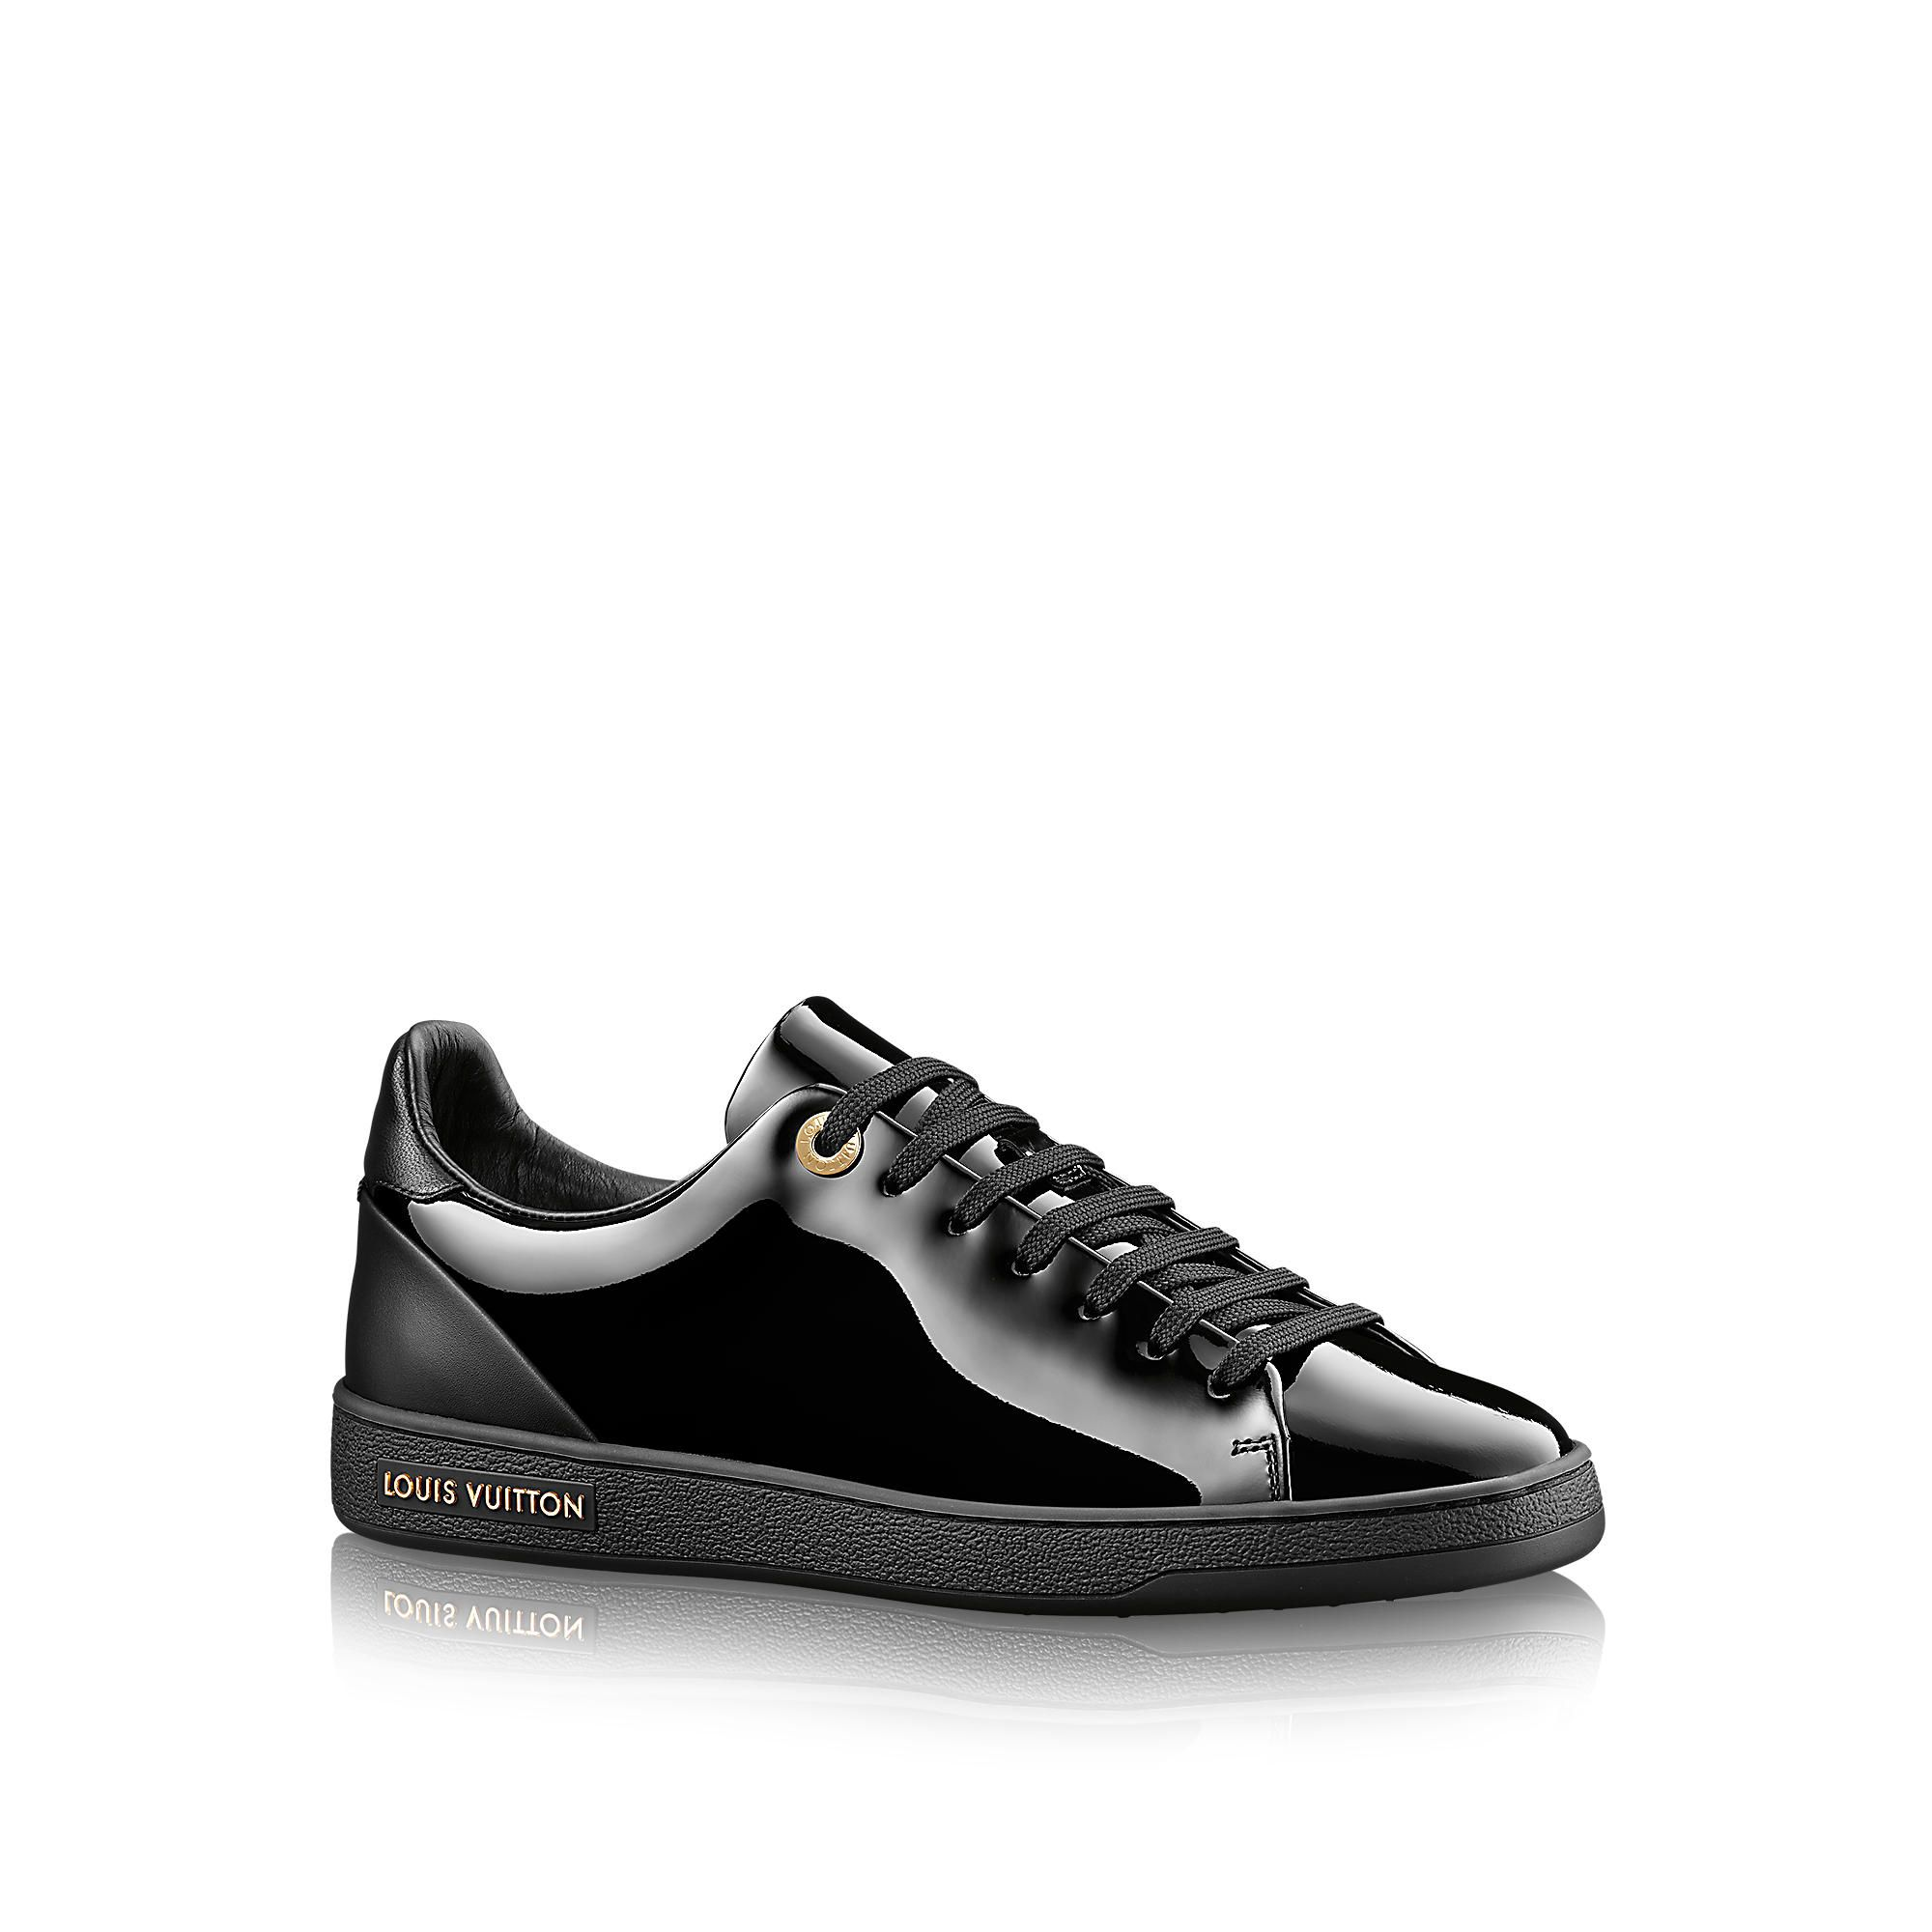 9359efc71860 key product page share discover product Frontrow Sneaker via Louis Vuitton